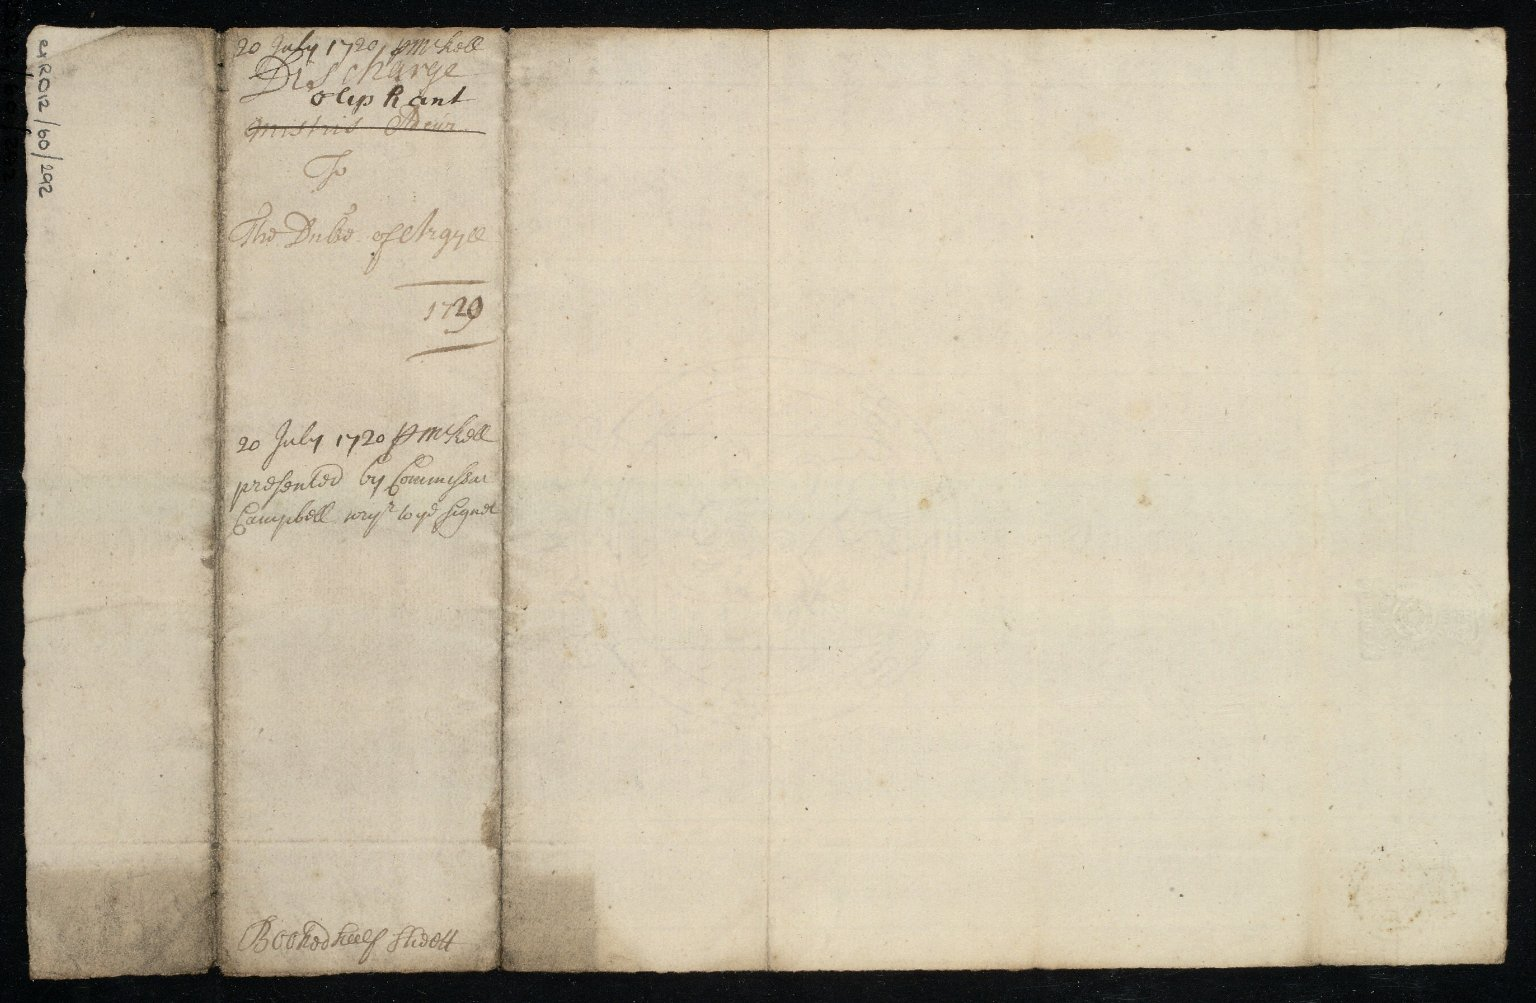 [Receipt. Jean Oliphant to Duke of Argyll for £21 sterling for a plan done by John Adair of the lands around Inverary] [2 of 2]